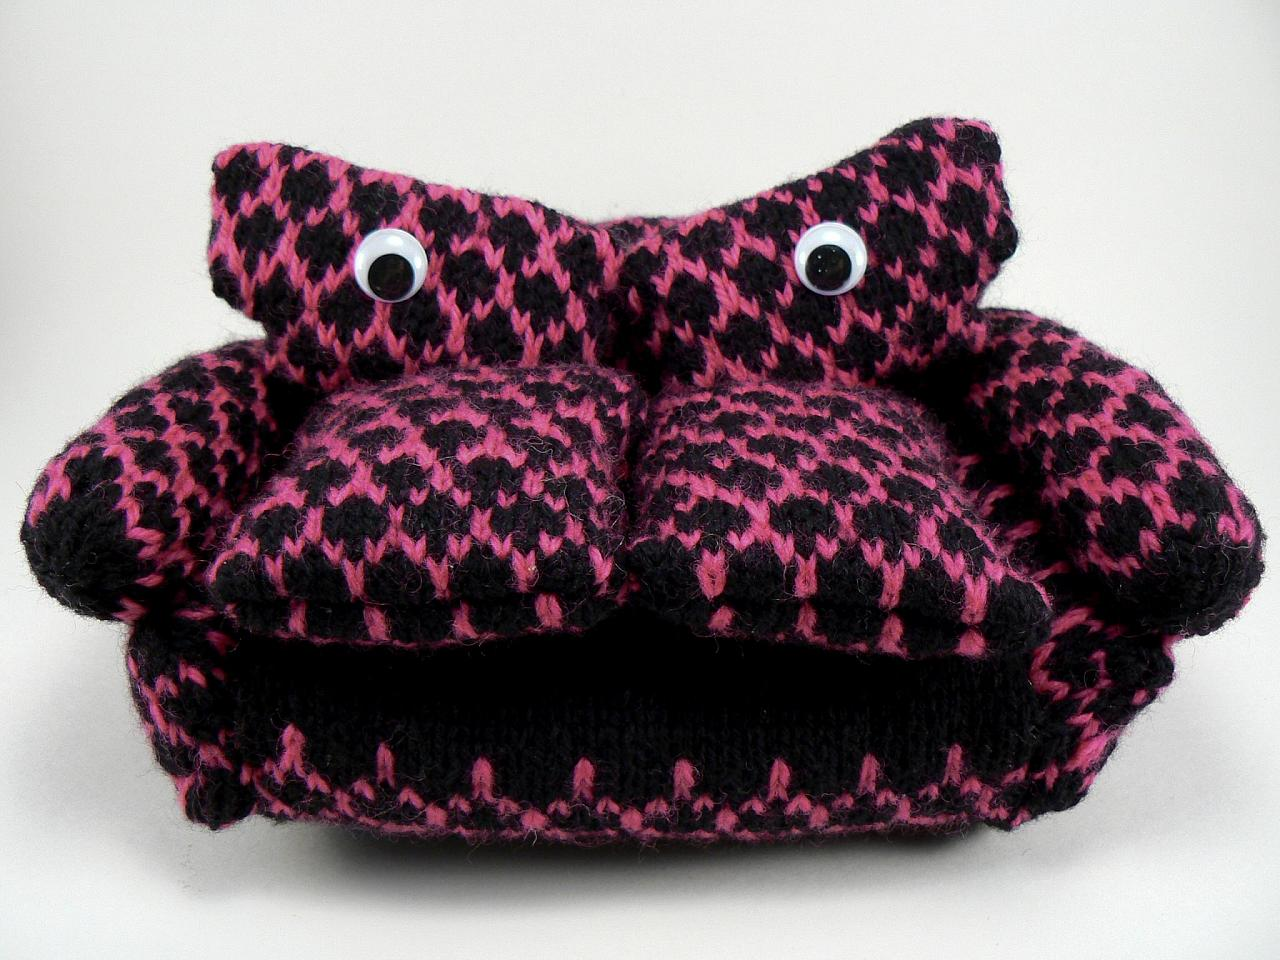 She Knit a Funny Little 'Grouchy Couch' Amigurumi ... So Grouchy, So Couchy